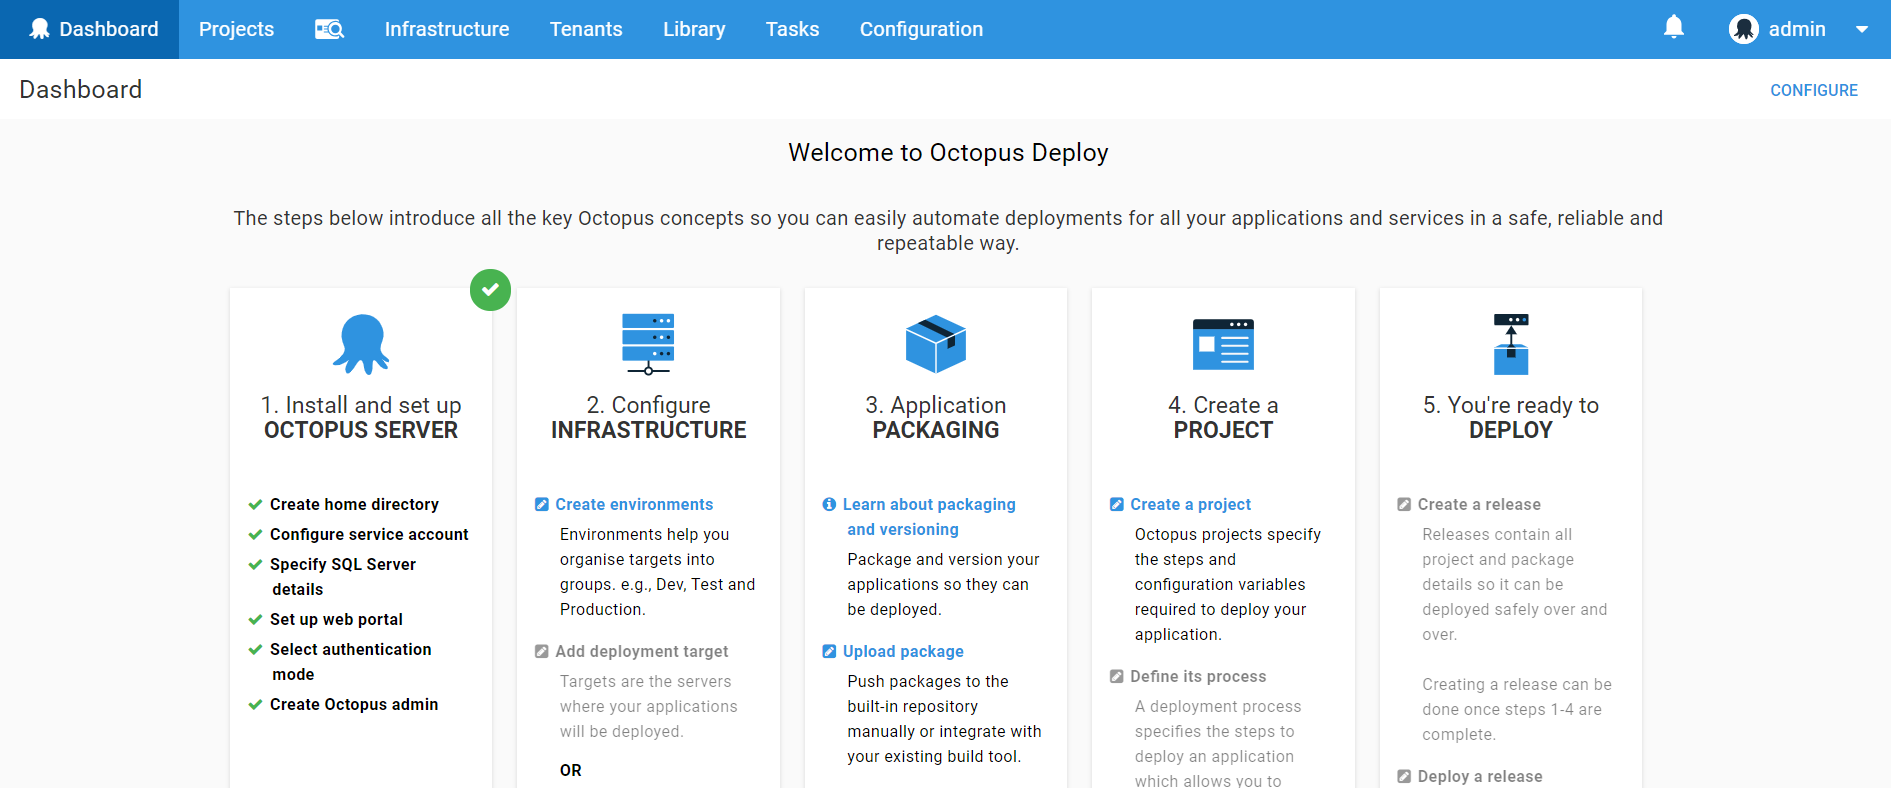 Automating Deployments from Azure Repos with Octopus Deploy